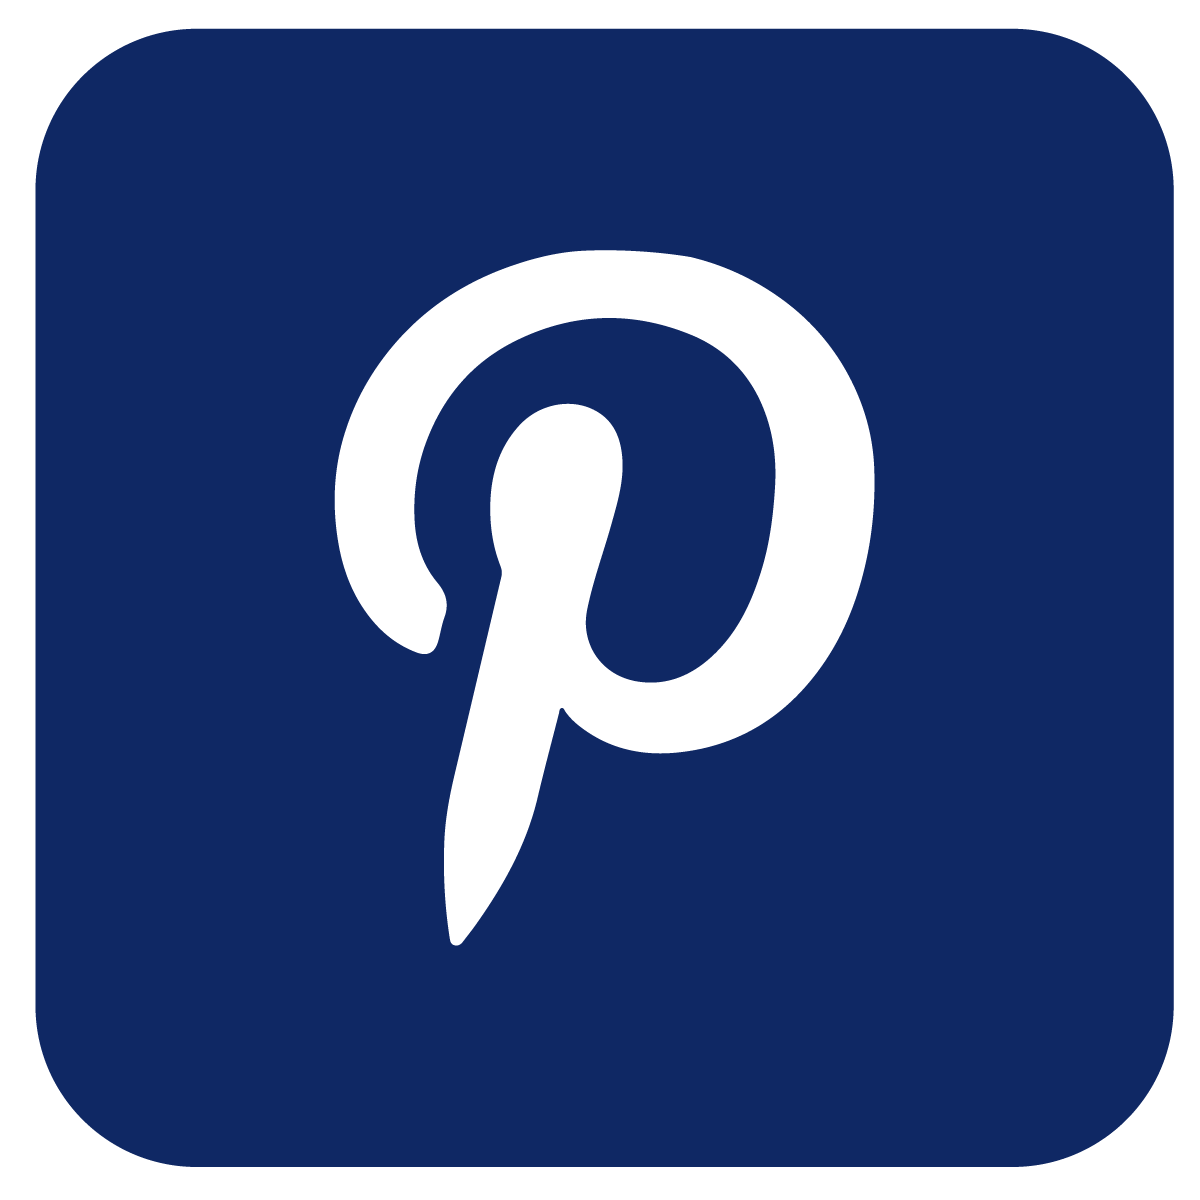 Eierund Social Media Pinterest